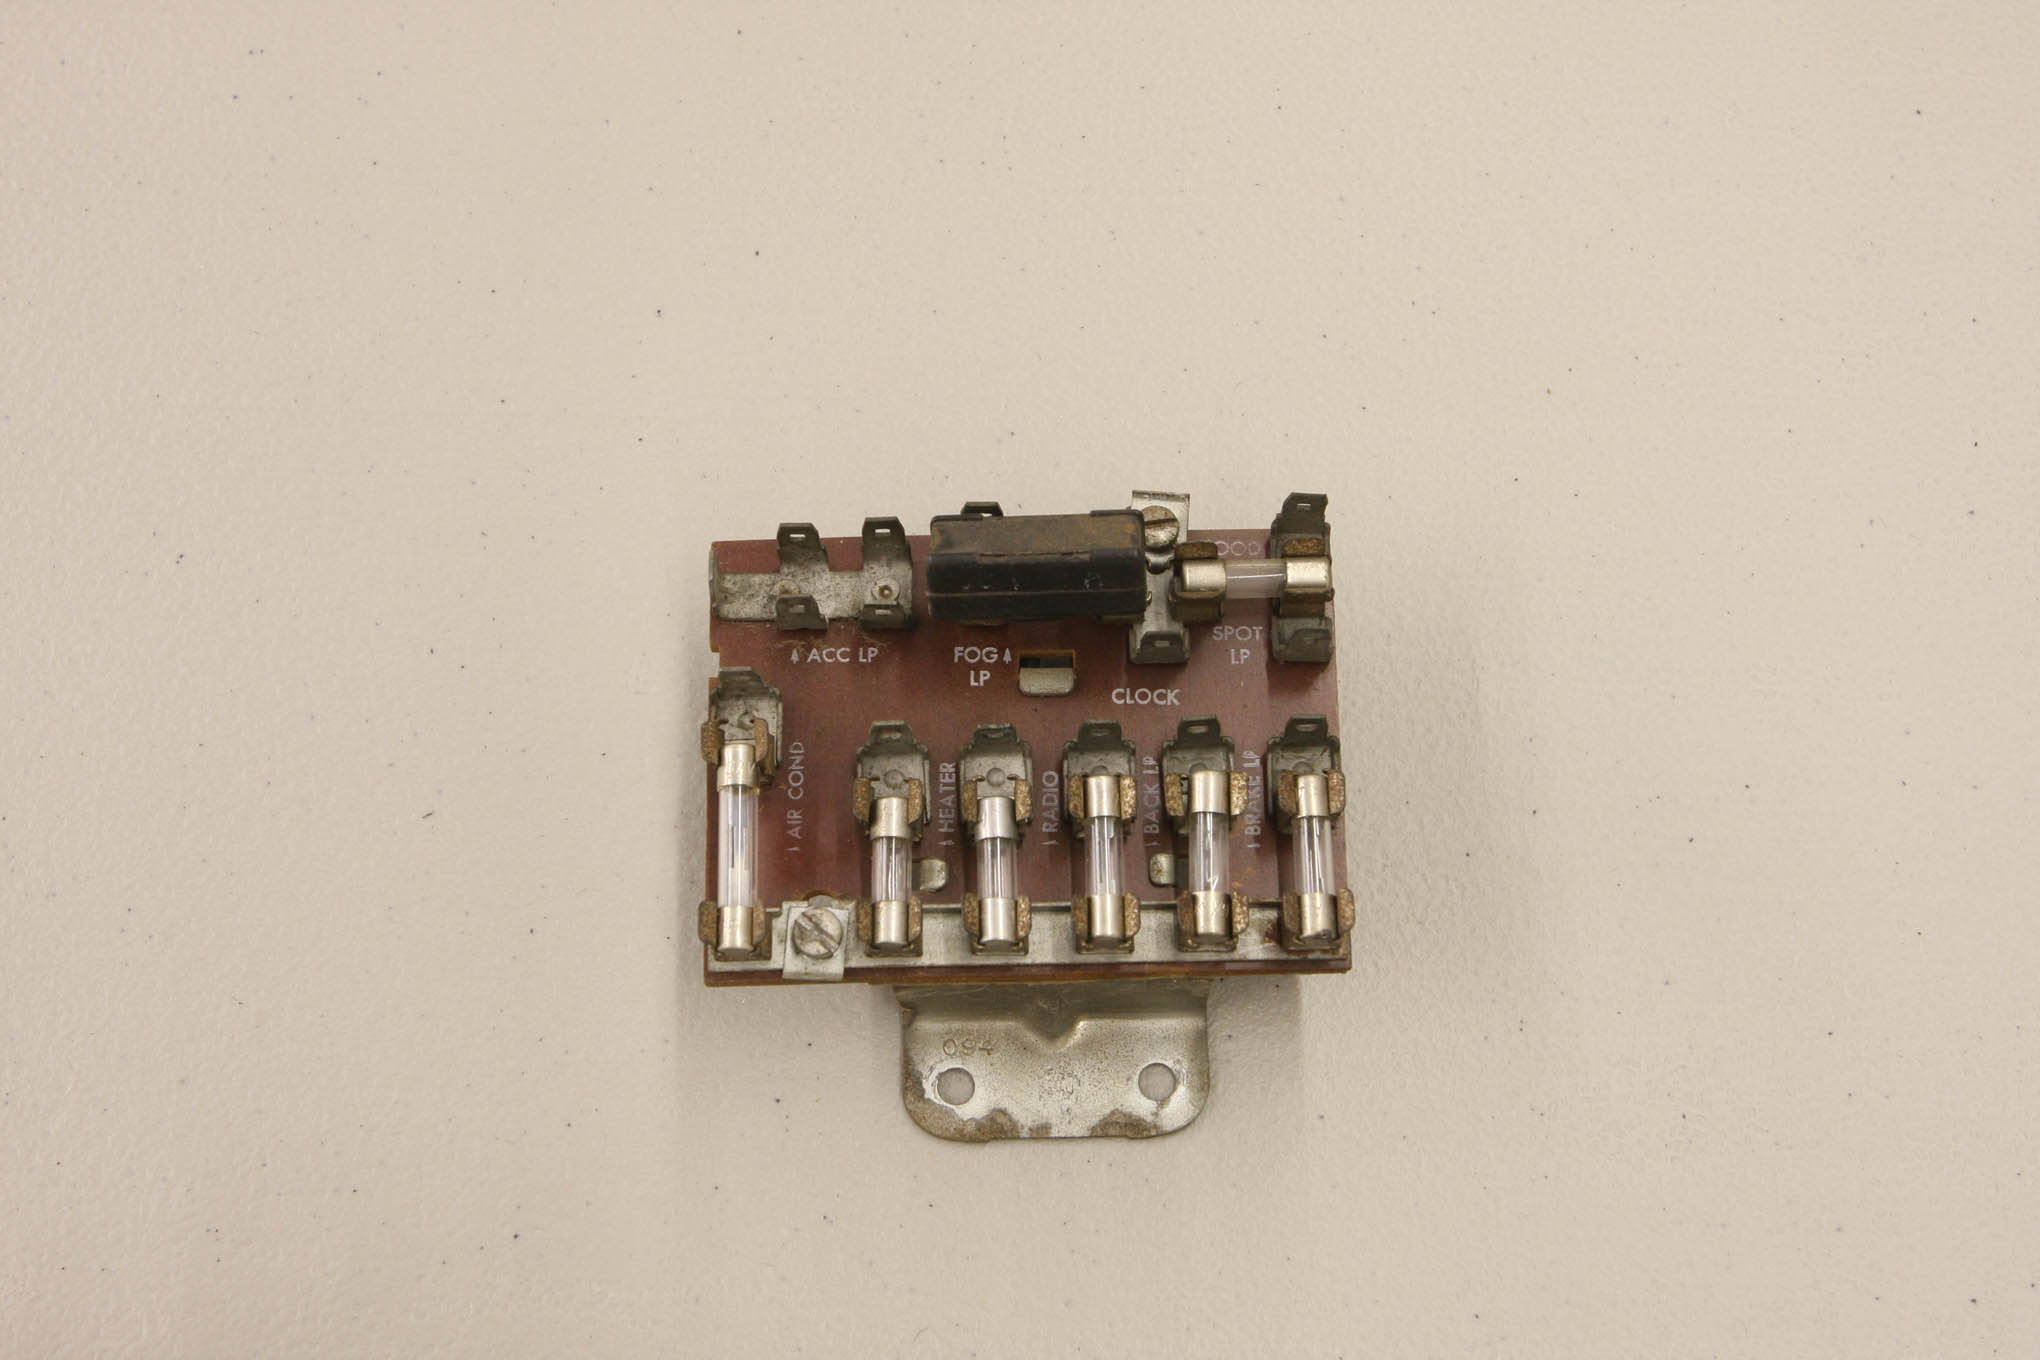 While it may have worked in its day, the original fuse block is inadequate for contemporary demands